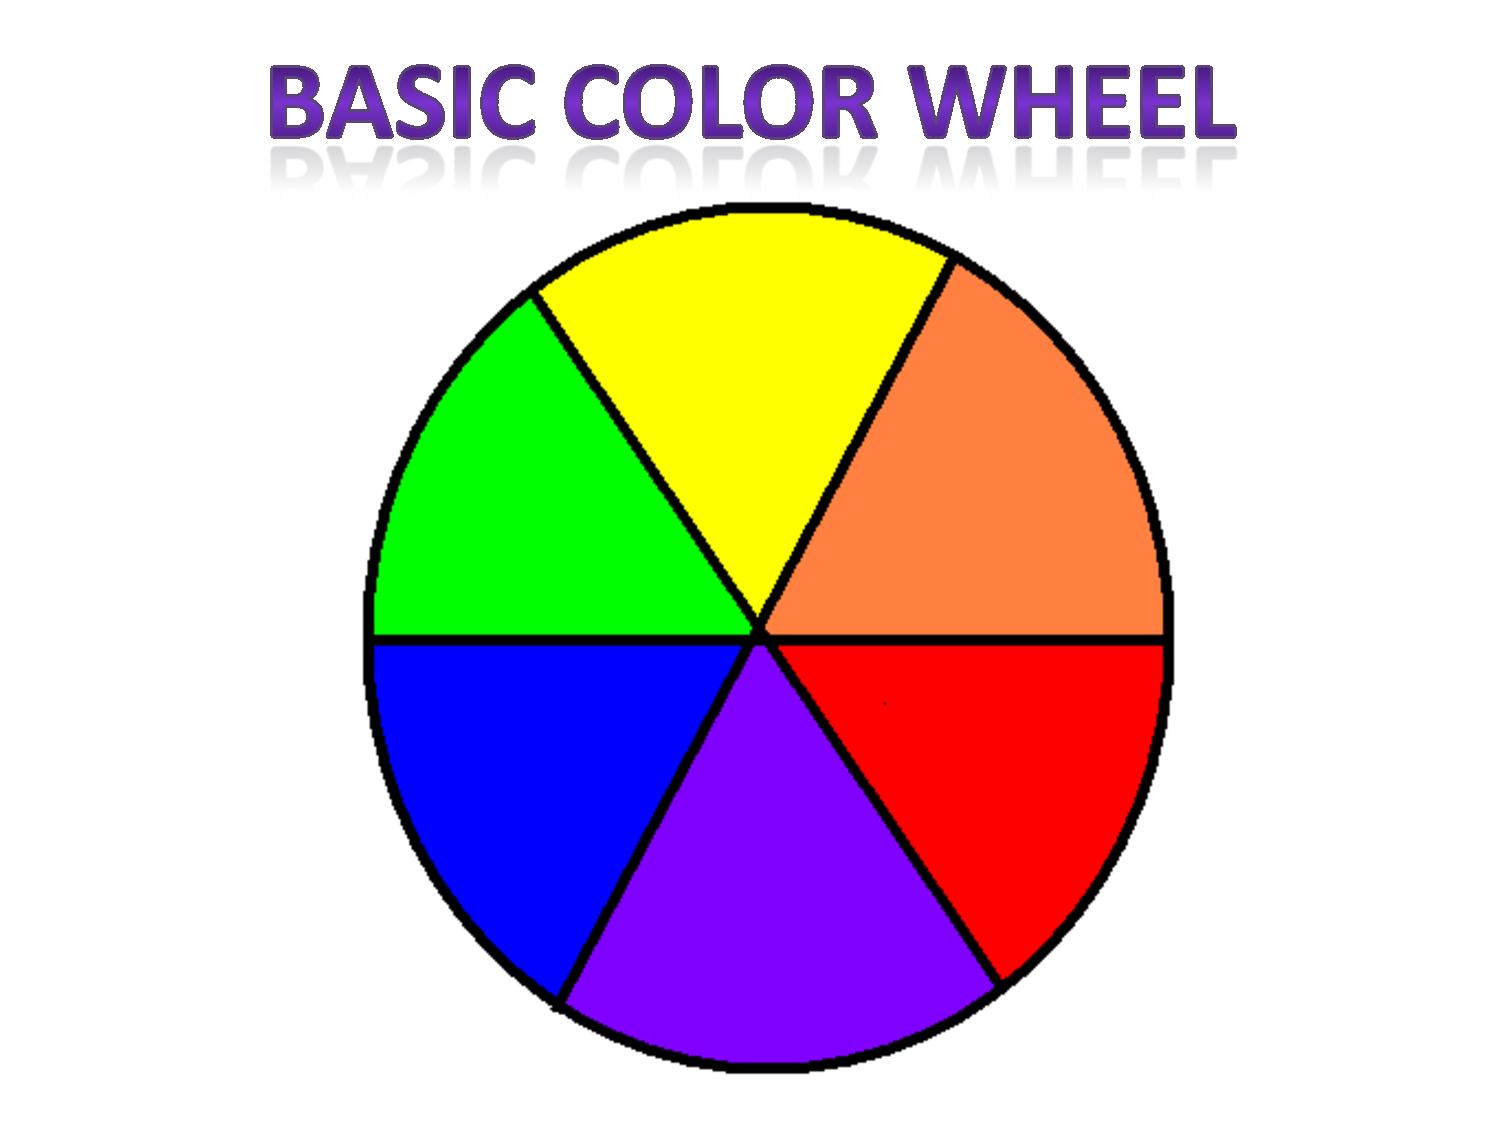 basic color wheel - Google Search